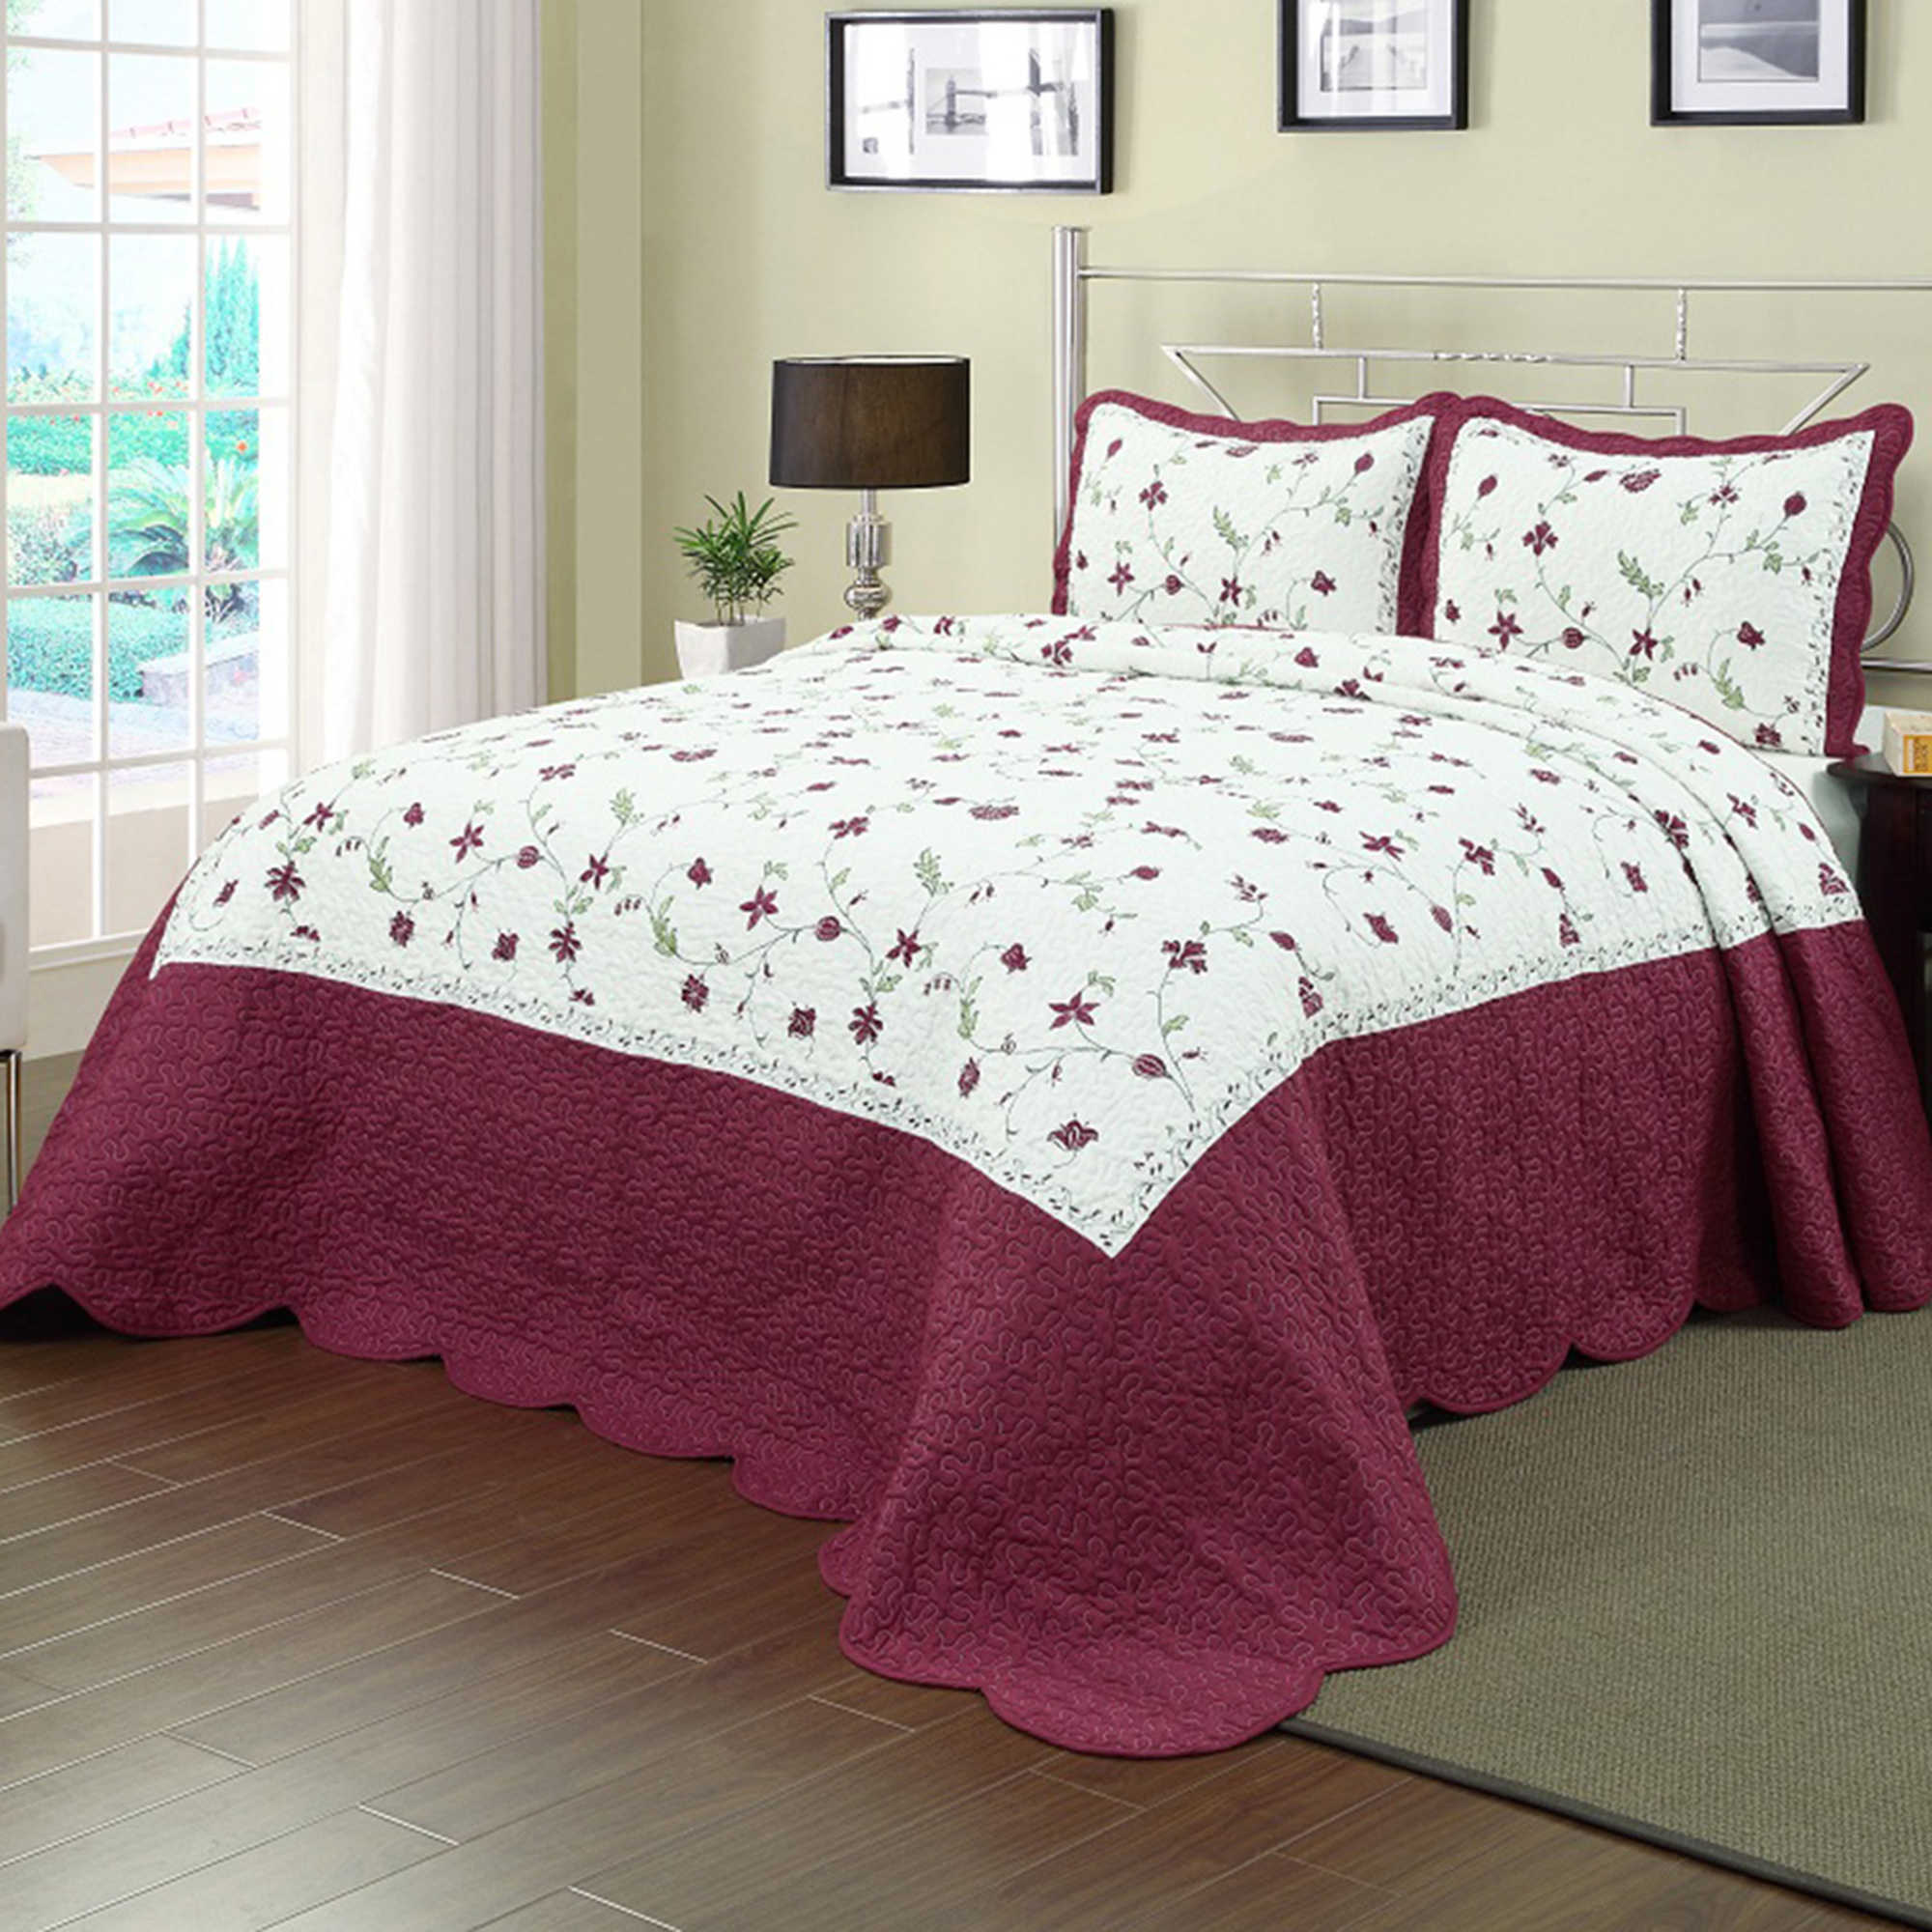 Bedspreads for Queen Size Beds | Target Bedspreads | Queen Bedspreads